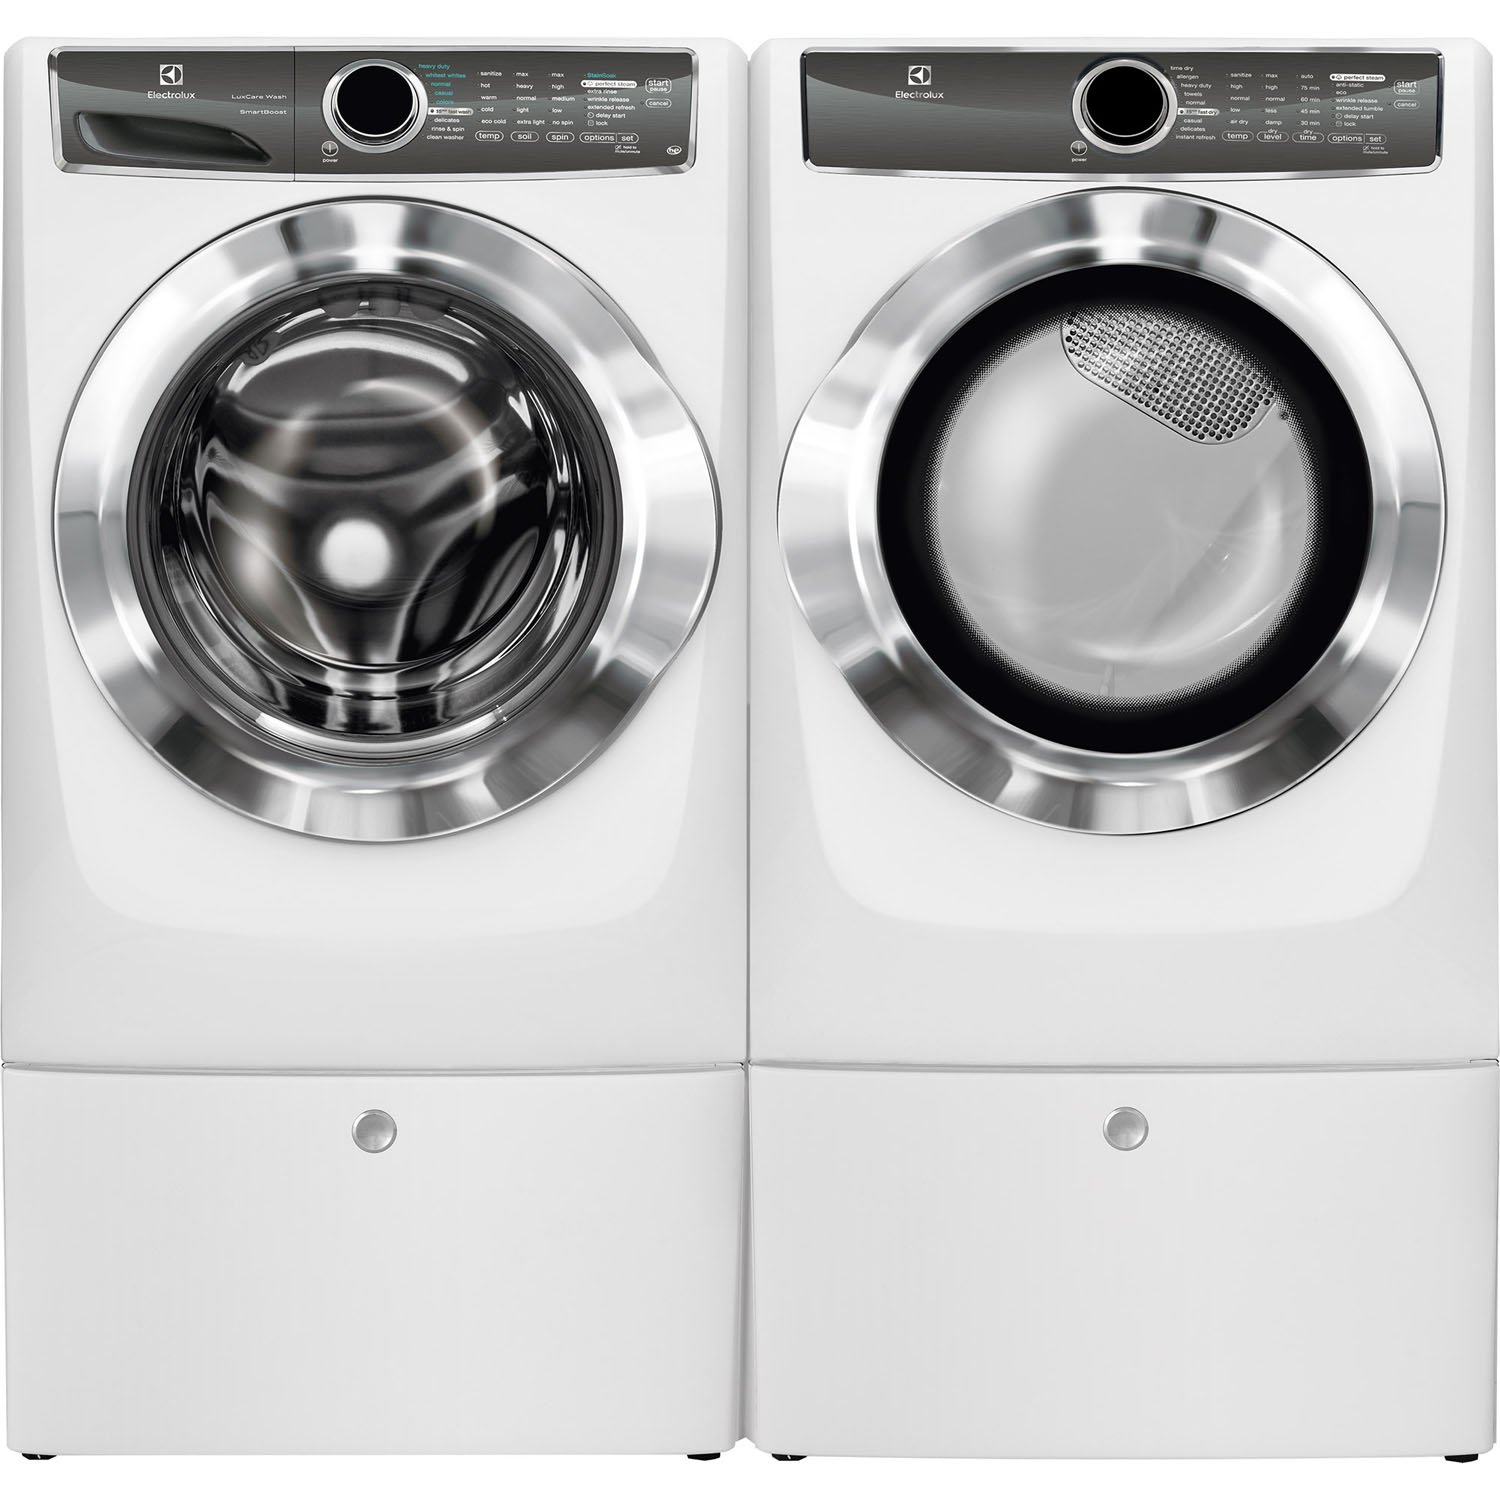 pedestal electrolux dryer main washer or storage feature